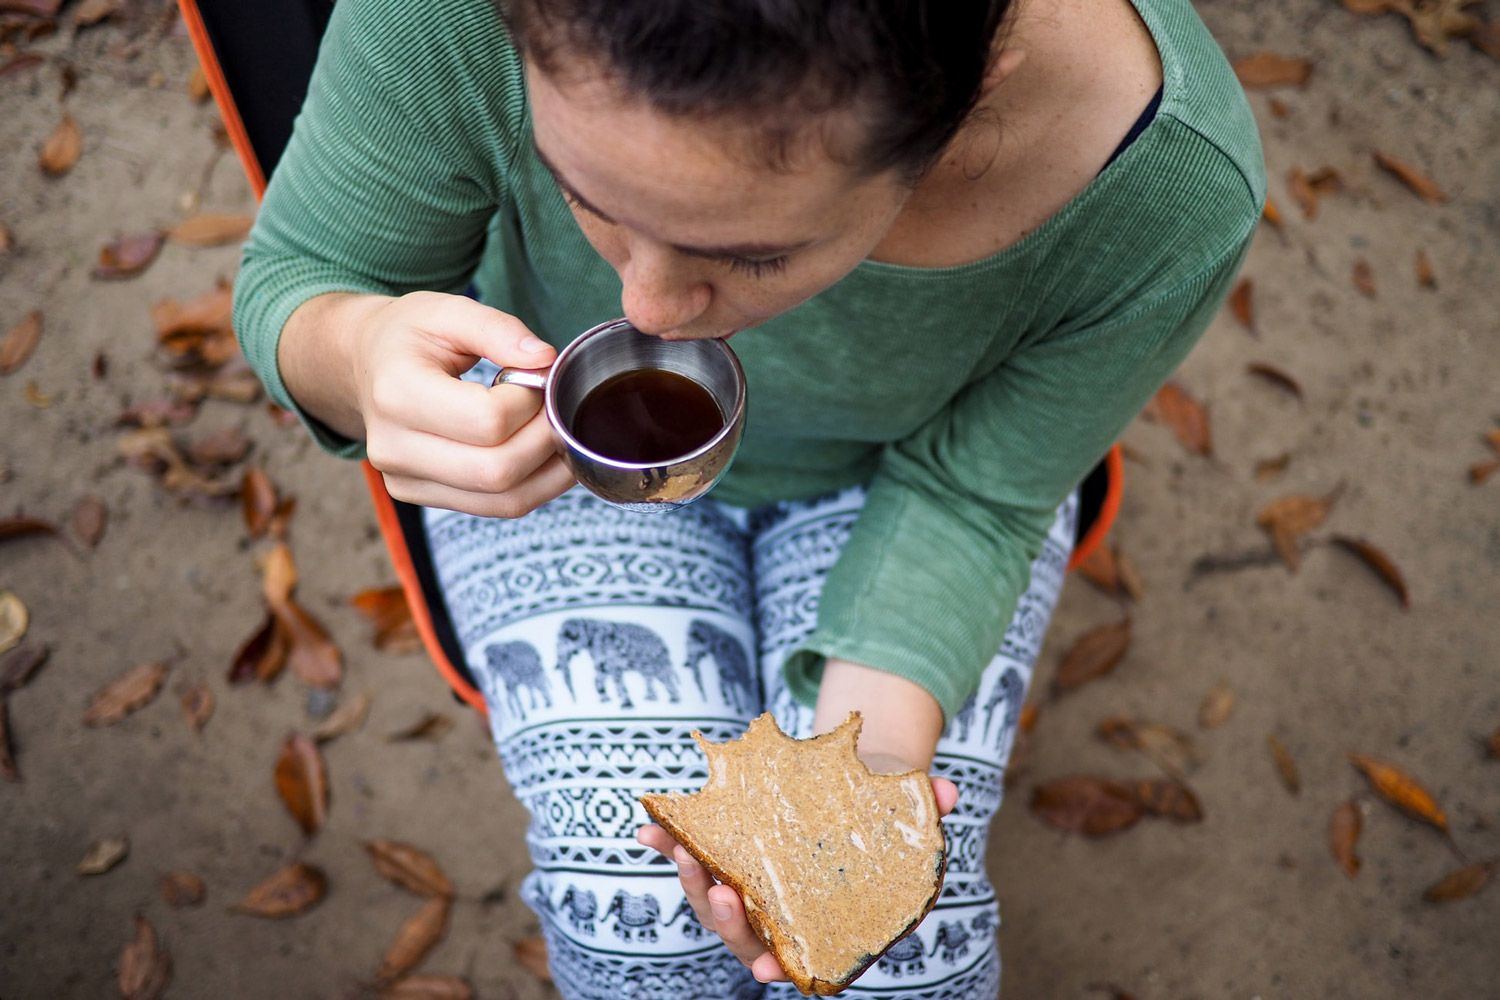 a lady sipping on coffee with a piece of bread in her hand.